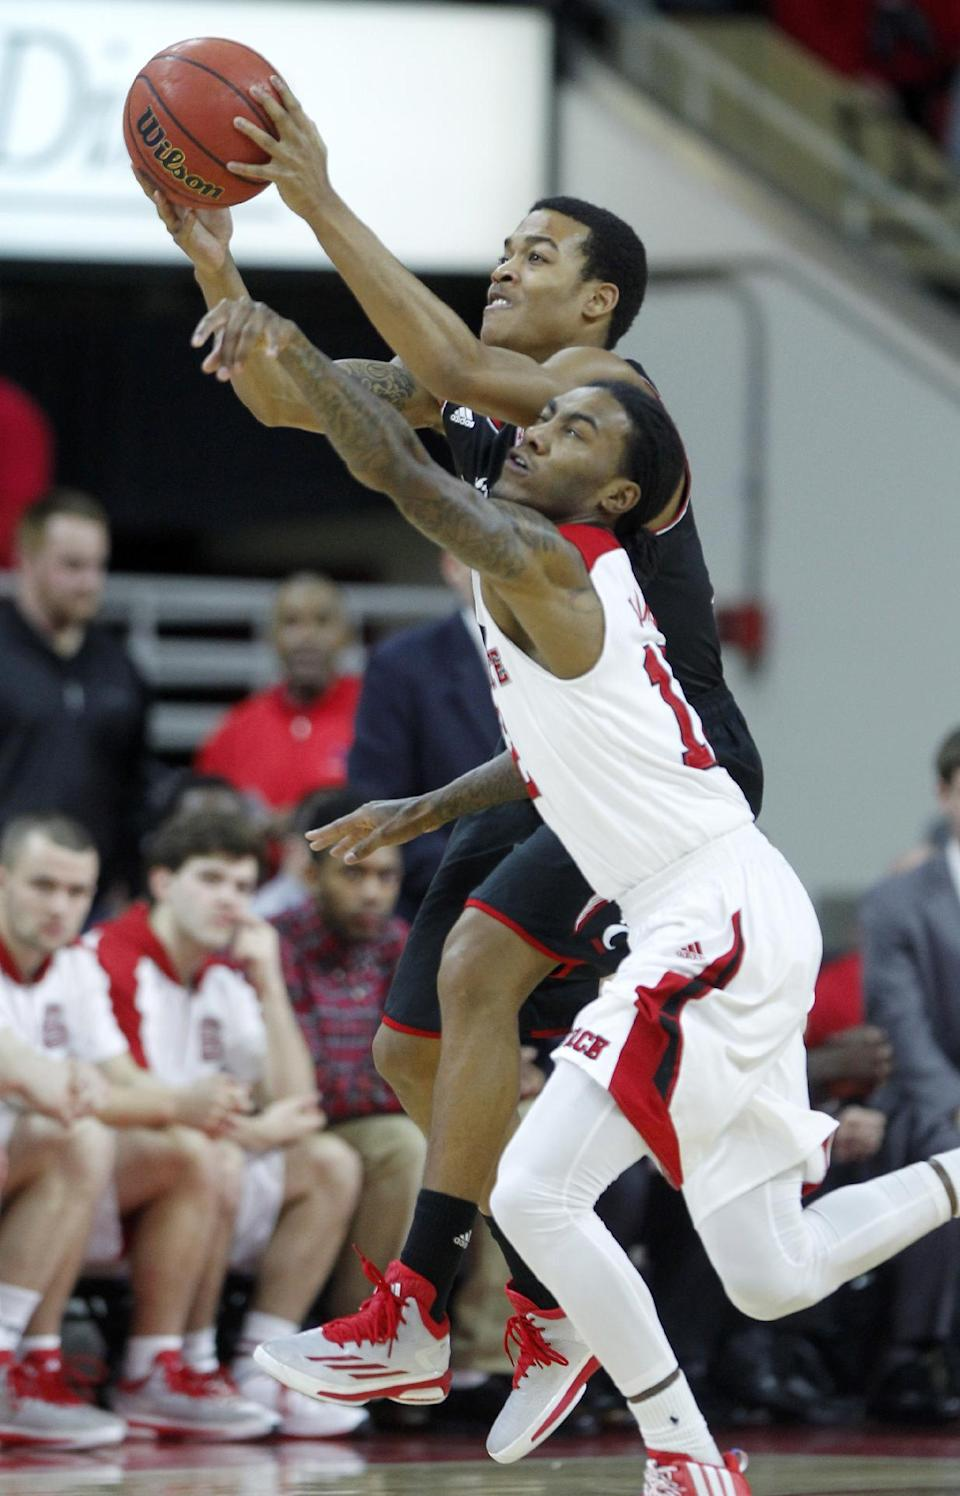 North Carolina State's Cat Barber, front, tries to steal the ball from Cincinnati's Troy Caupain (10) during the first half of an NCAA college basketball game Tuesday, Dec. 30, 2014, in Raleigh, N.C. (AP Photo/The News & Observer, Ethan Hyman)